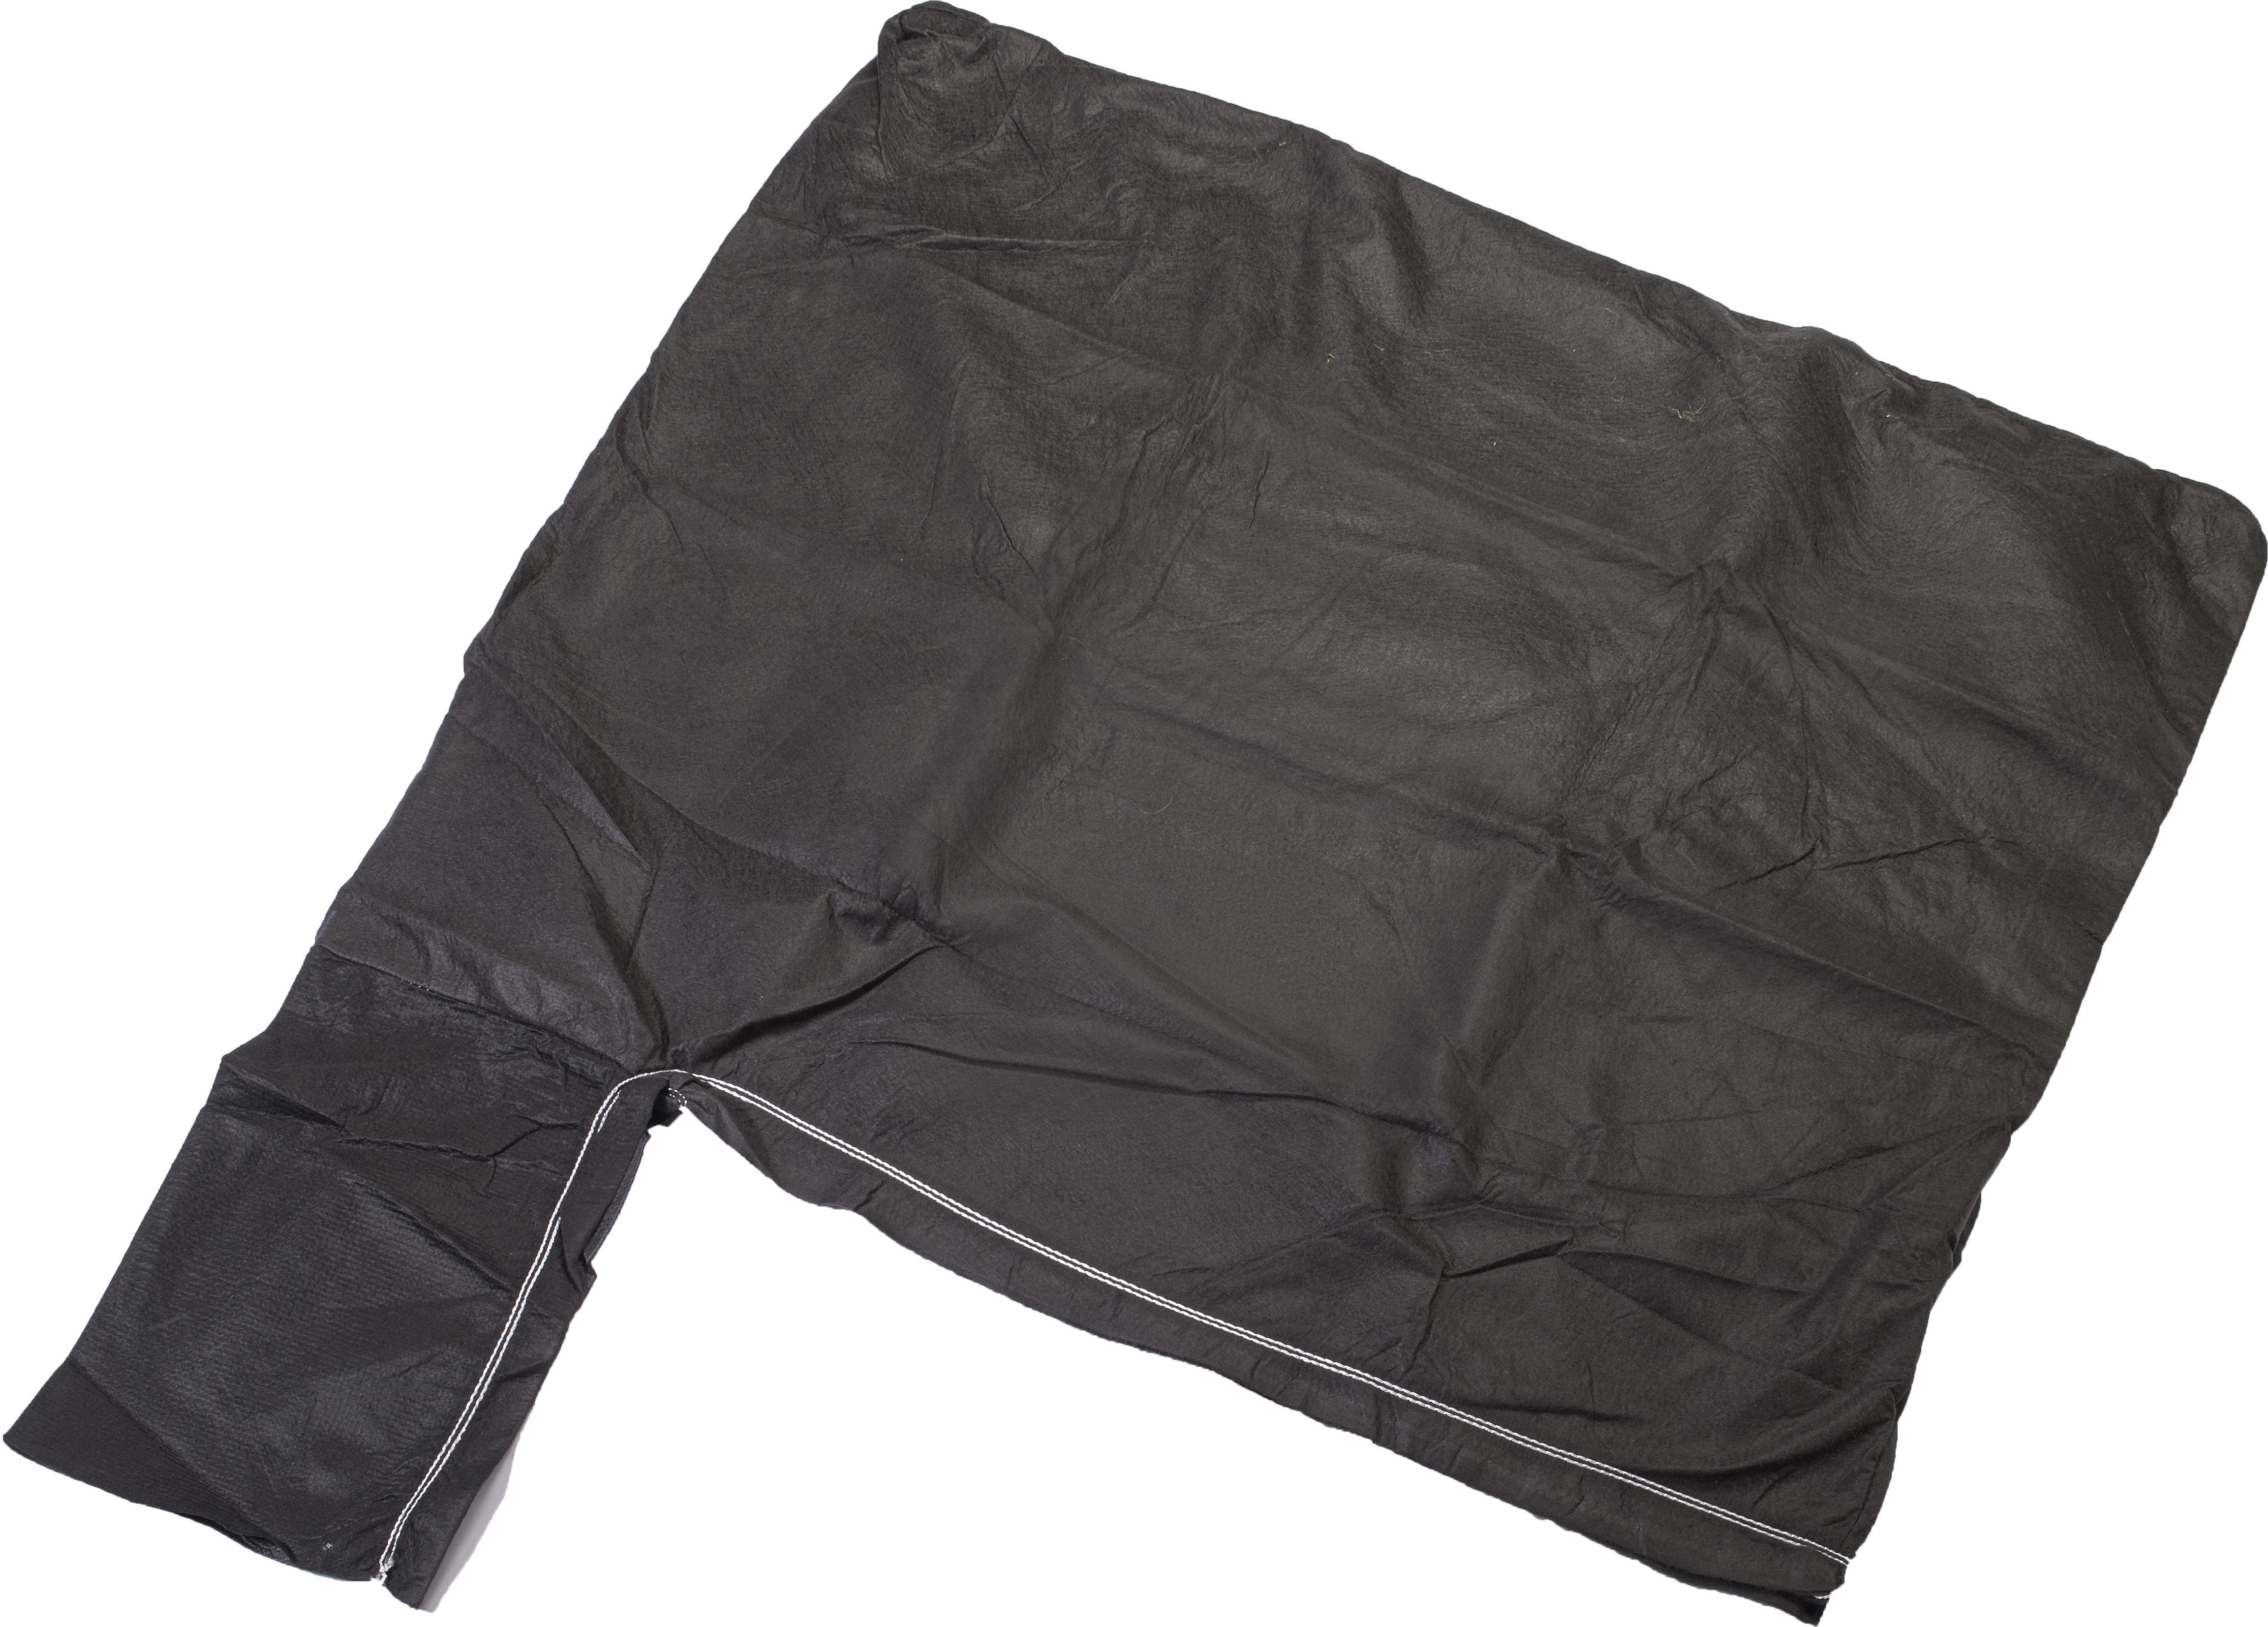 15925-500, 8 oz Non Woven Geotextile Disposal Sediment Filter Wetland Bag, 6' Length x 5' Width, Mutual Industries